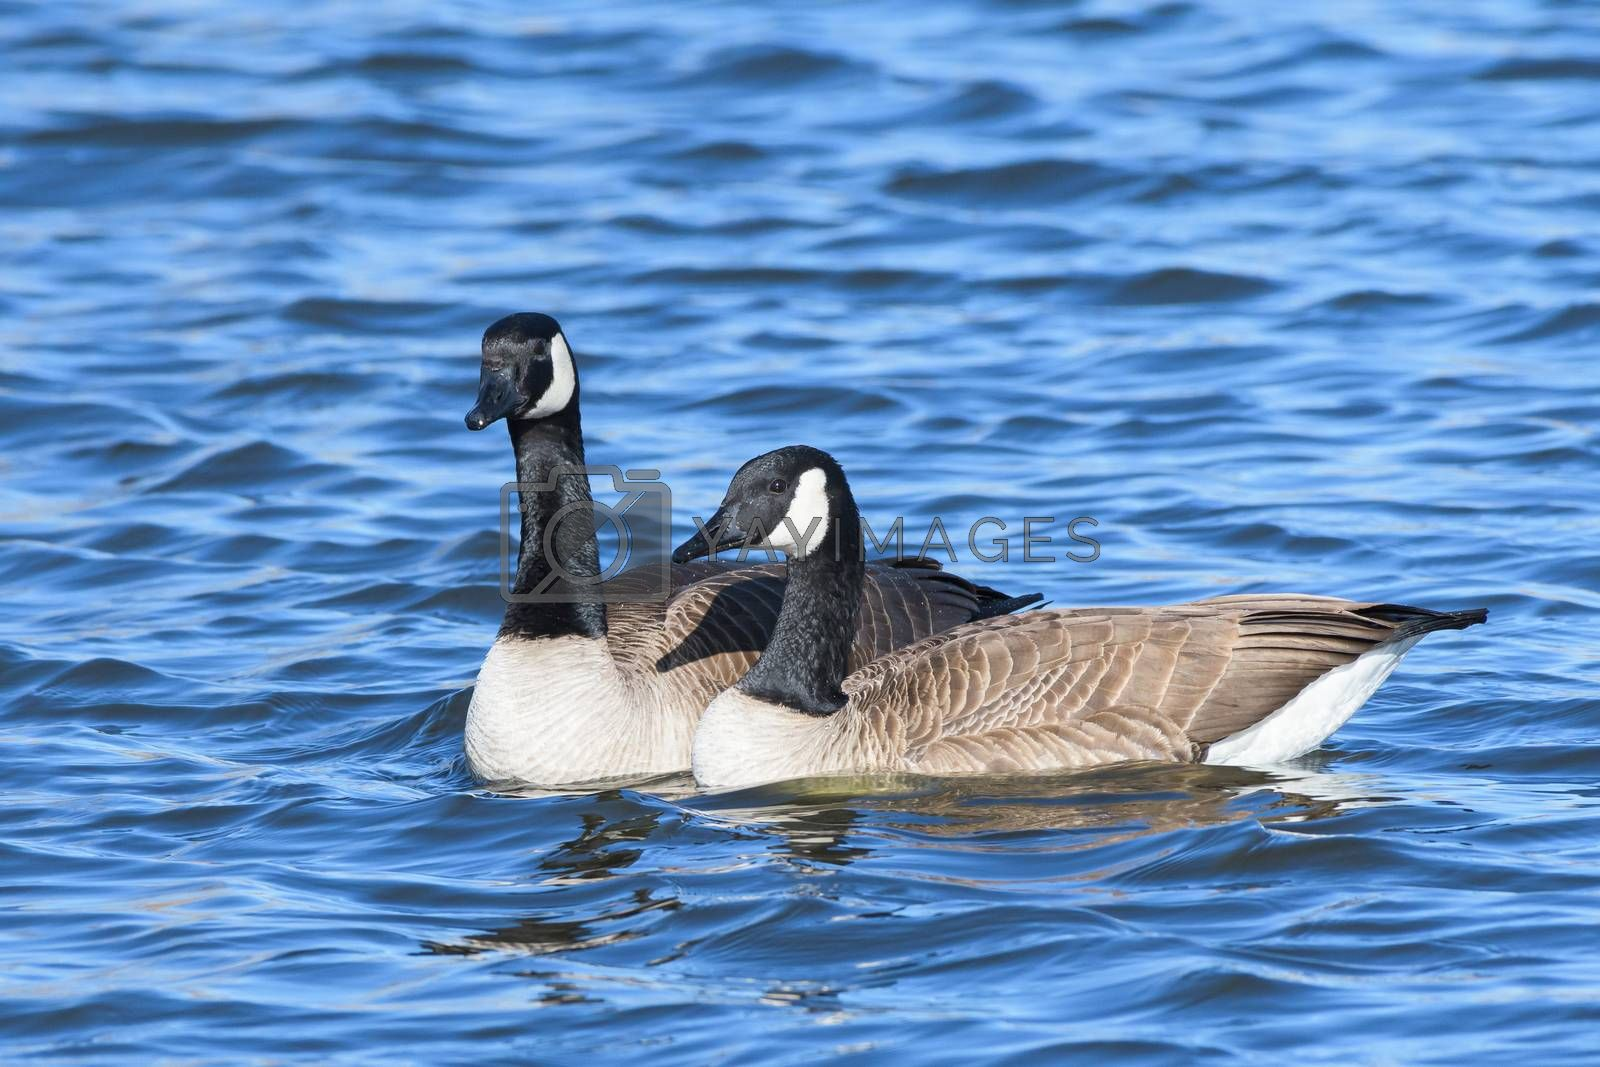 Migratory birds of Colorado. Canada Geese in a clear water lake.